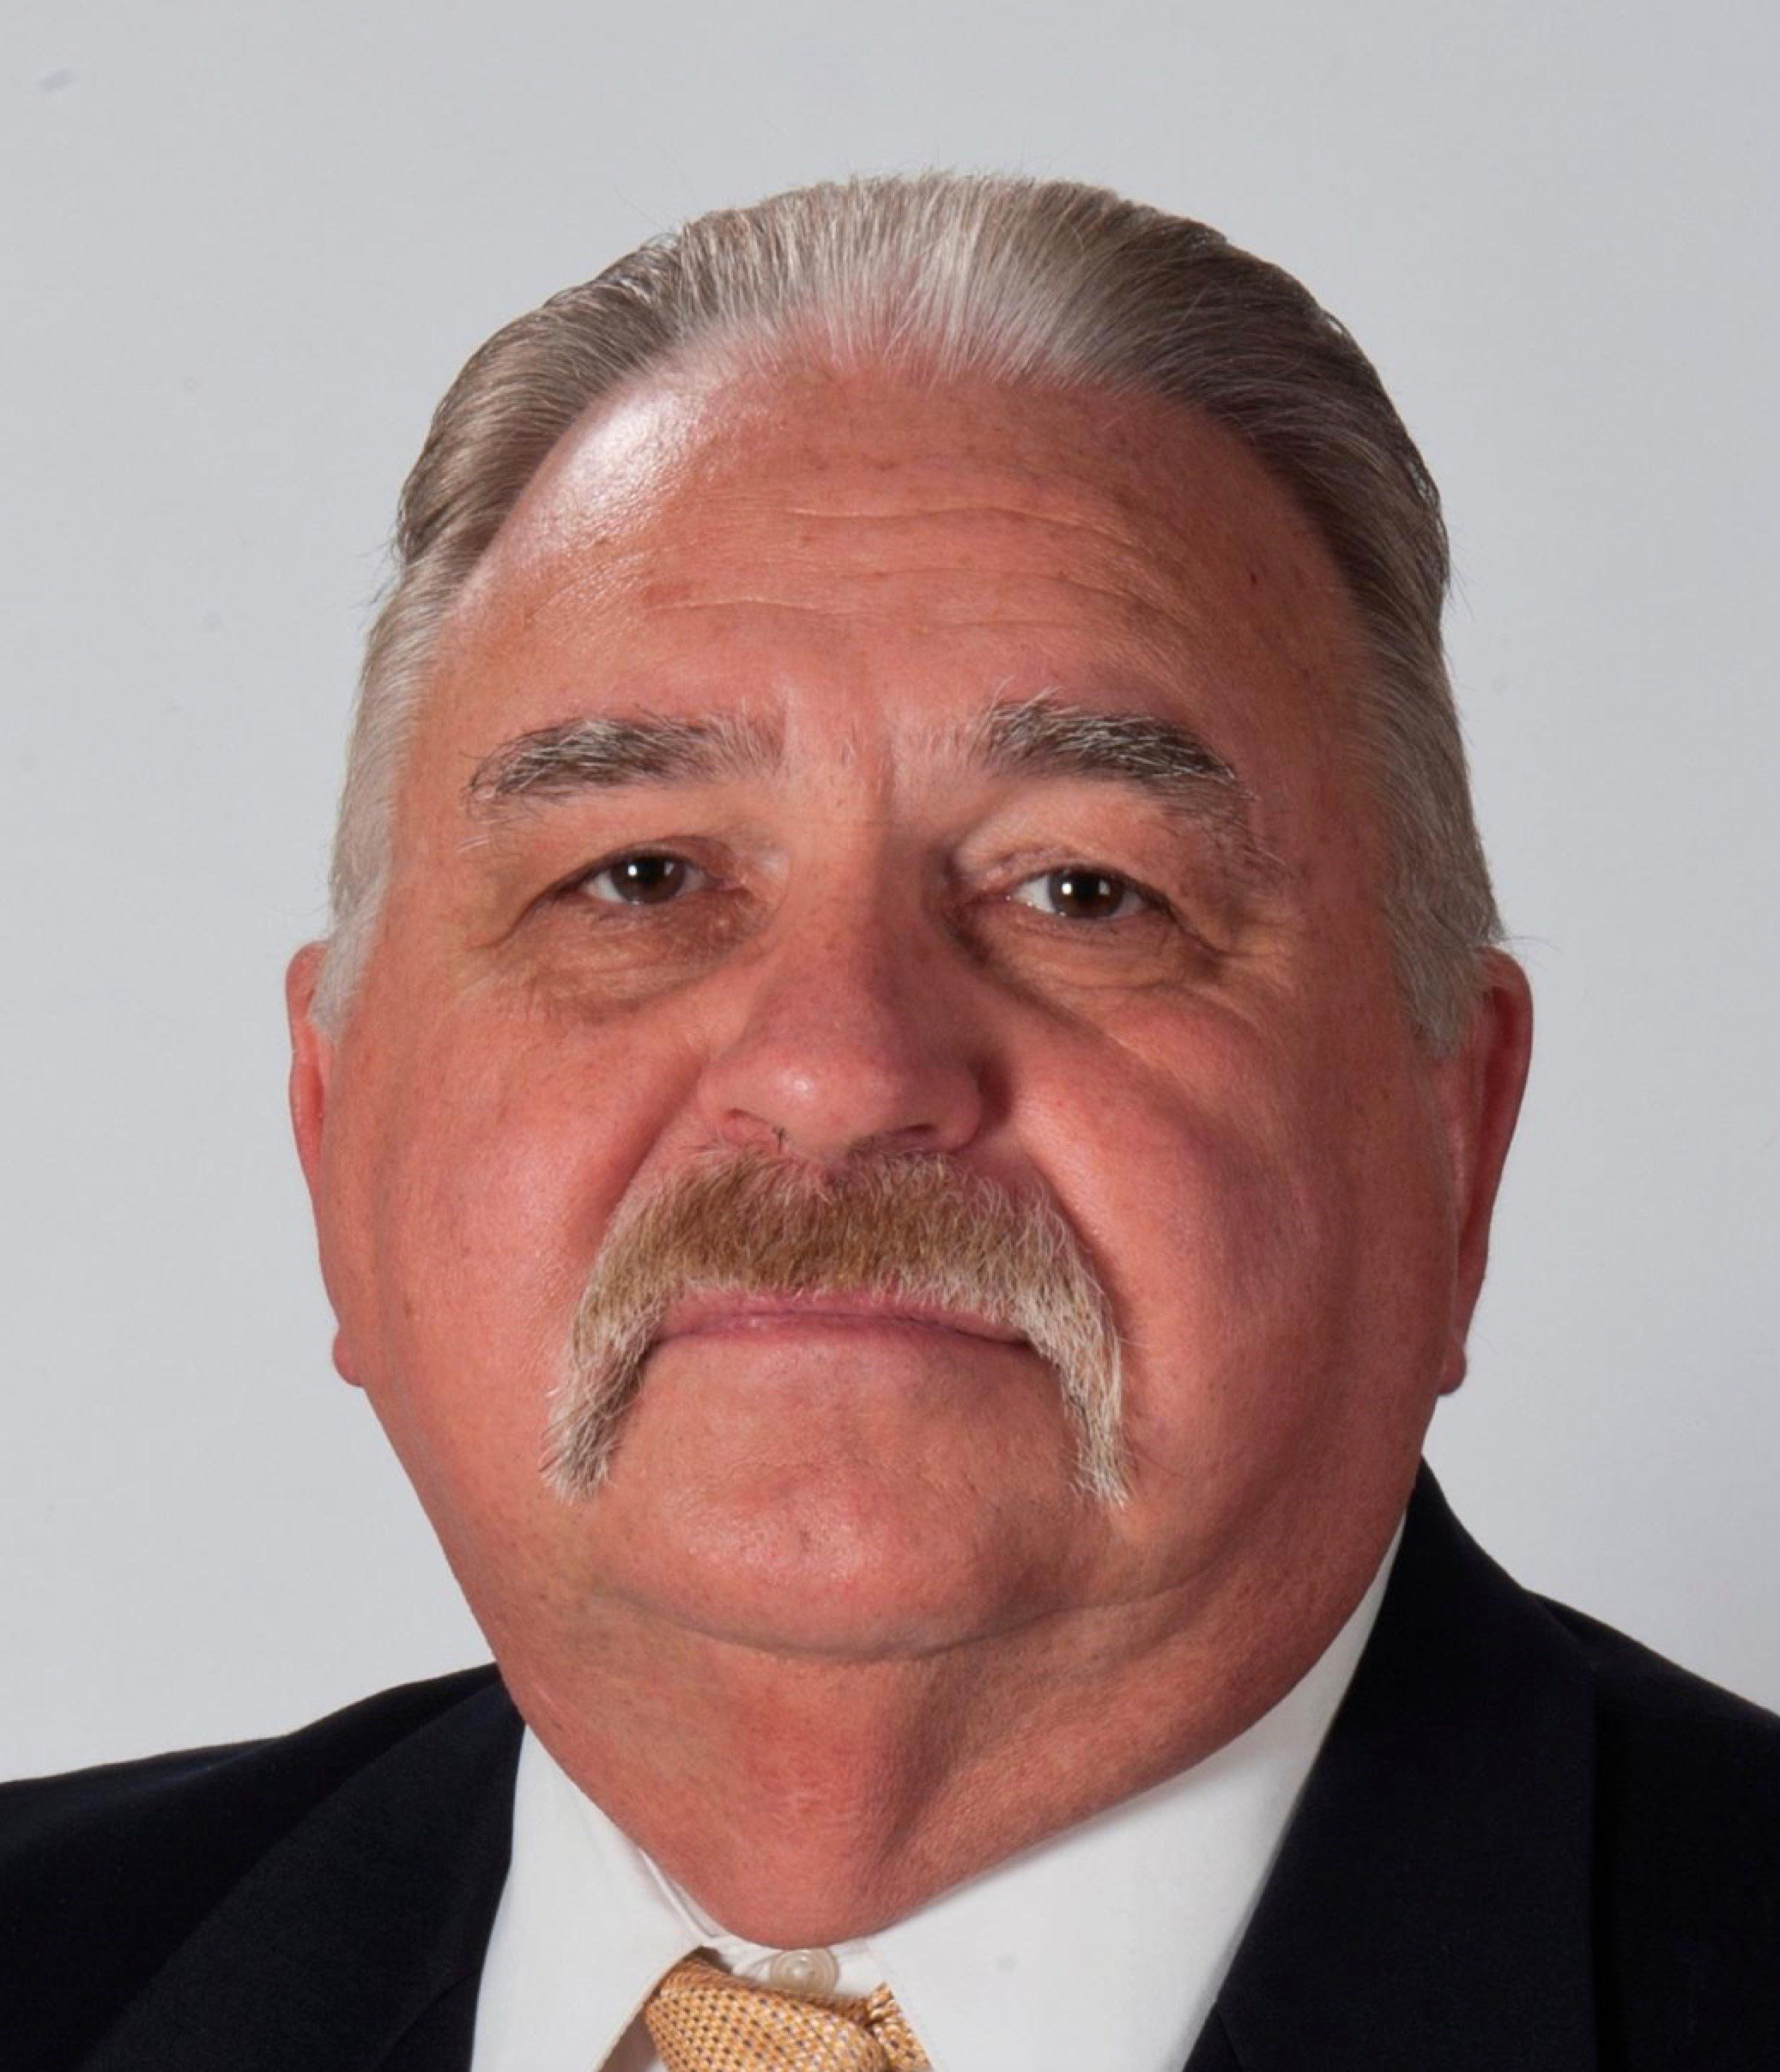 KCTV5's investigative team reached out to Roger Golubski. He declined to comment on the allegations of sex abuse and corruption. (Edwardsville Police Department)